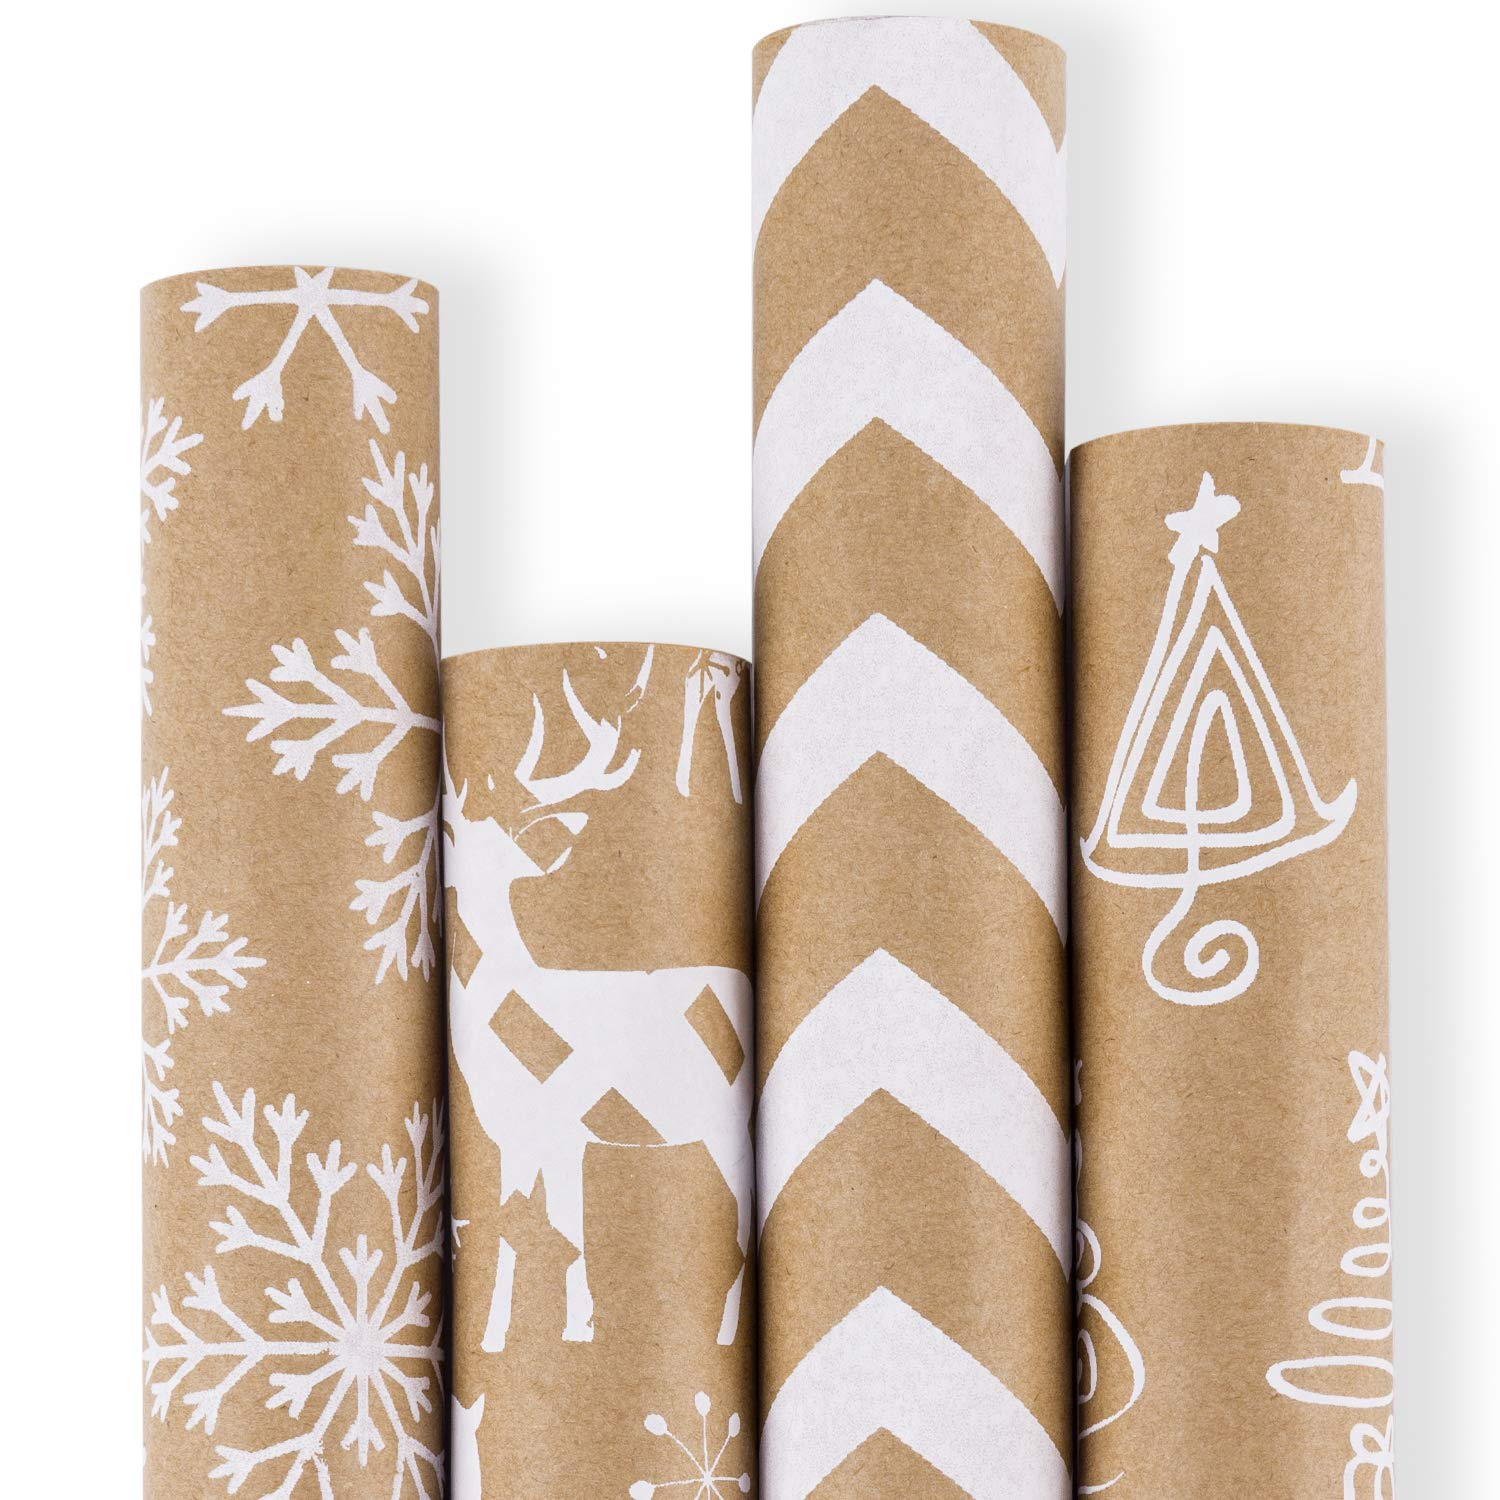 STRONG ECO-FRIENDLY KRAFT WRAPPING PAPER SHEETS GIFTS ARTS 90gsm *ALL SIZES*